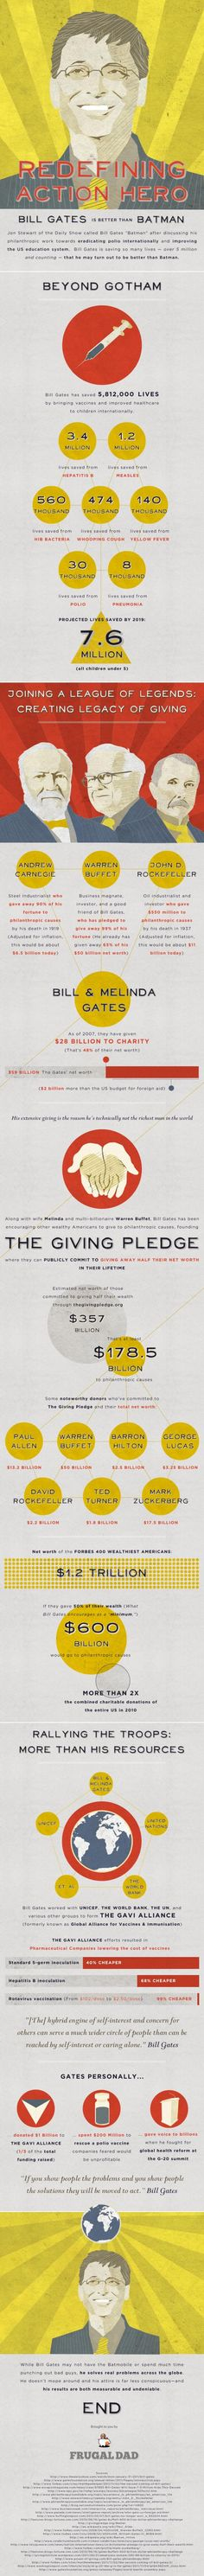 Redefining Action Hero - Bill Gates is better than Batman - infographic on his philanthropy